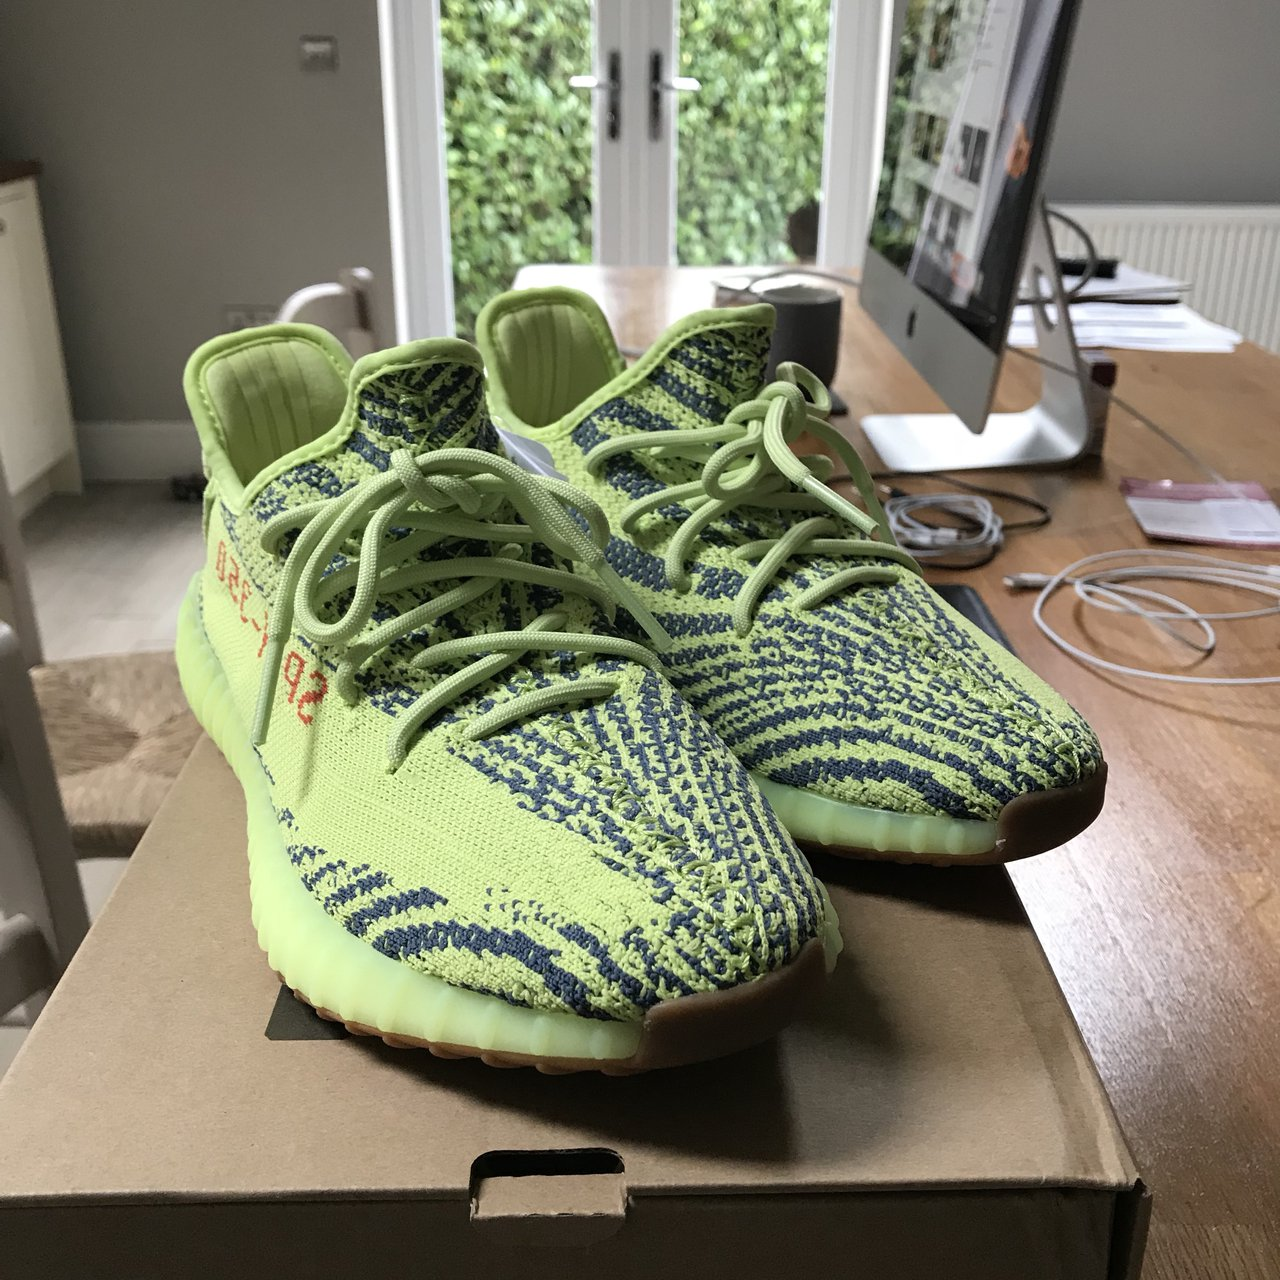 86077d220 Confirmed Adidas Yeezy boost 350 V2 semi frozen yellow RARE - Depop